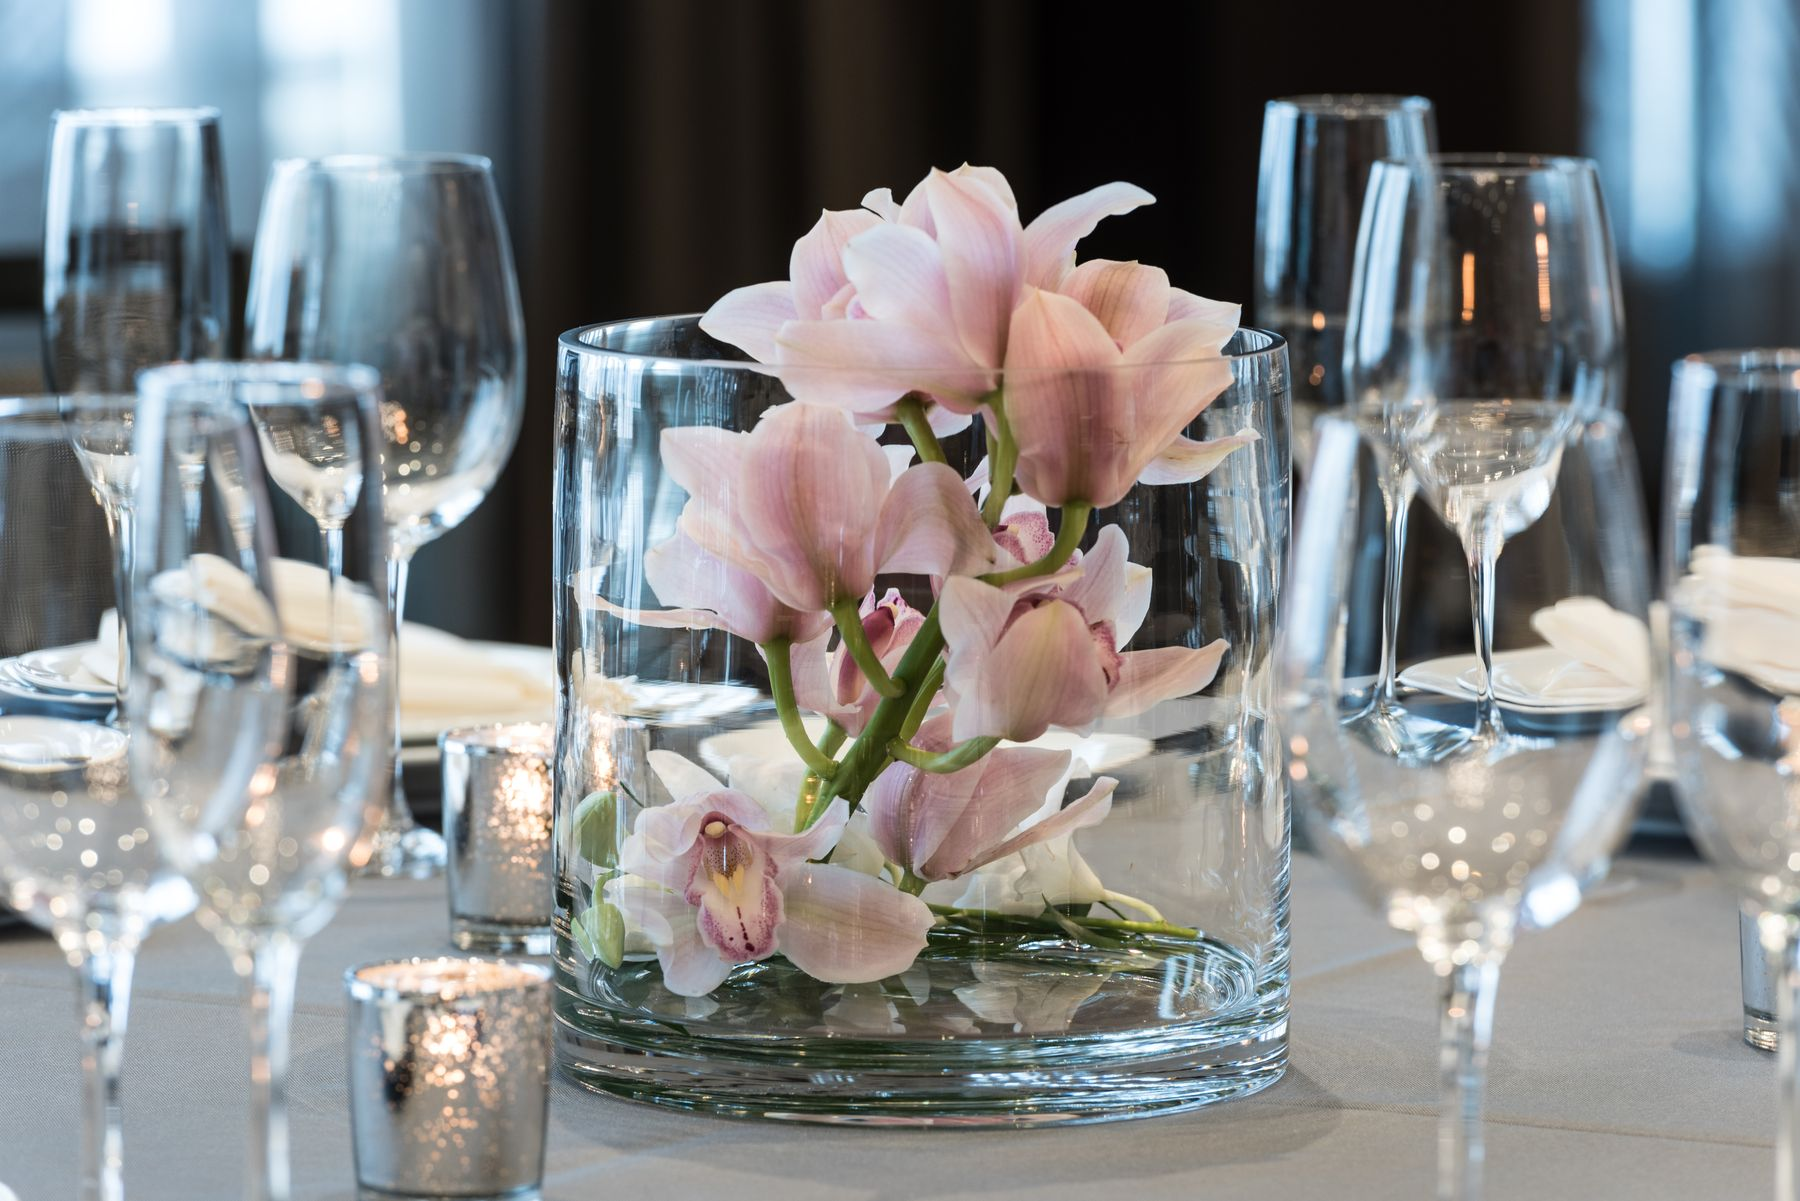 Floral centerpiece and wine glasses